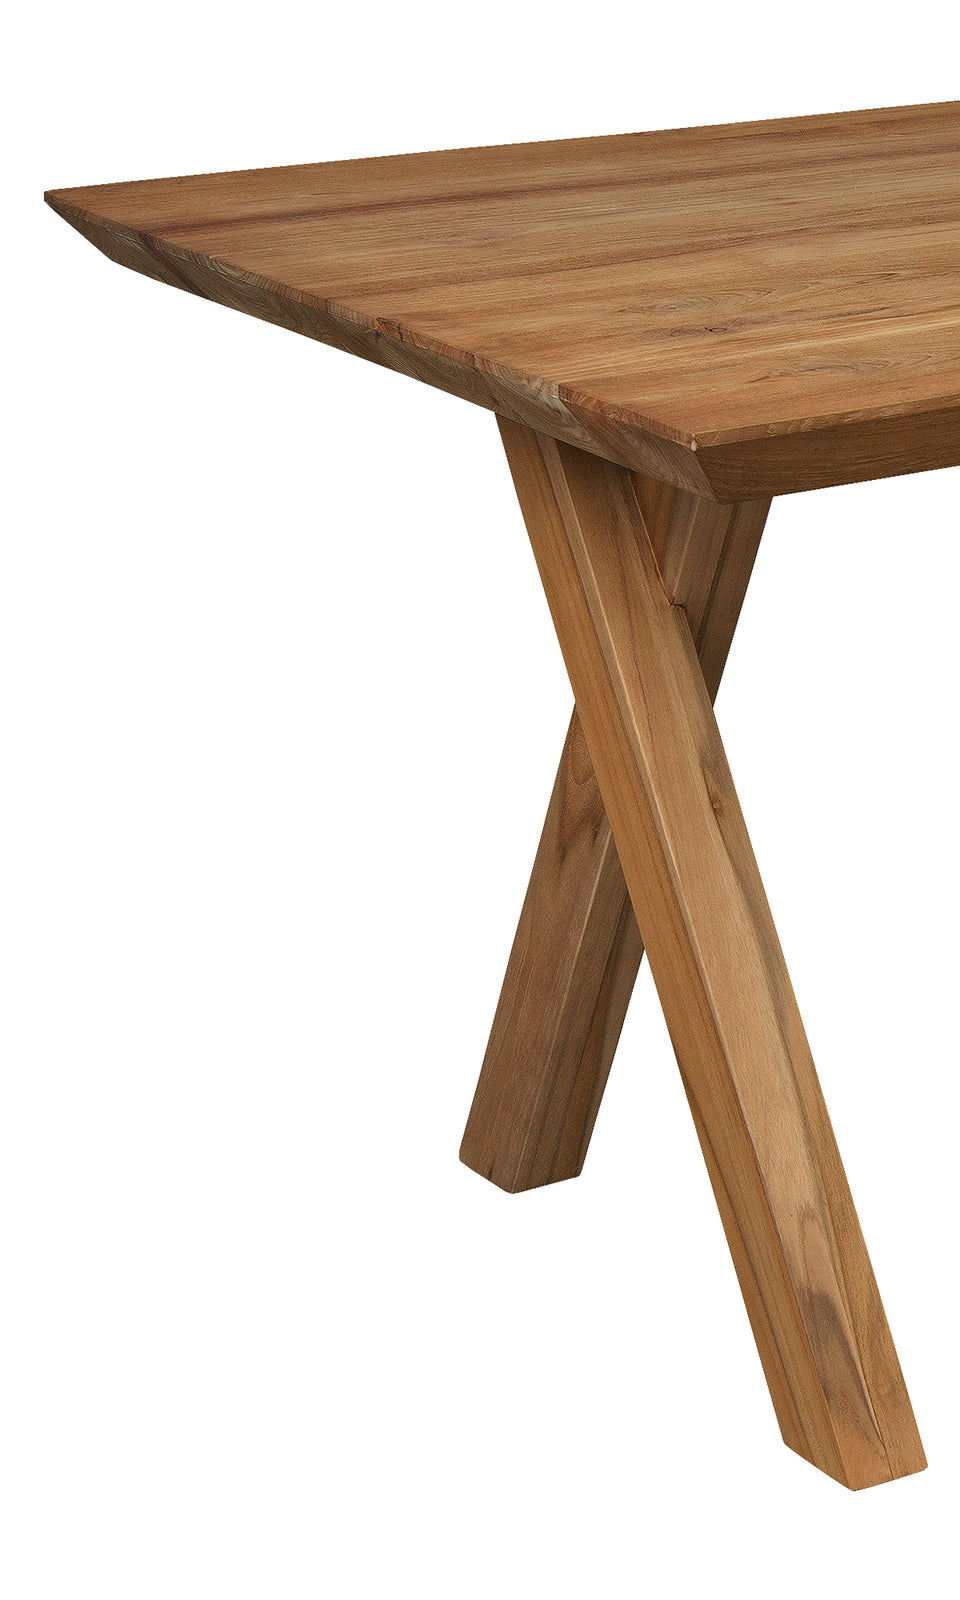 Bayan Teak Dining Table with X-shaped Legs